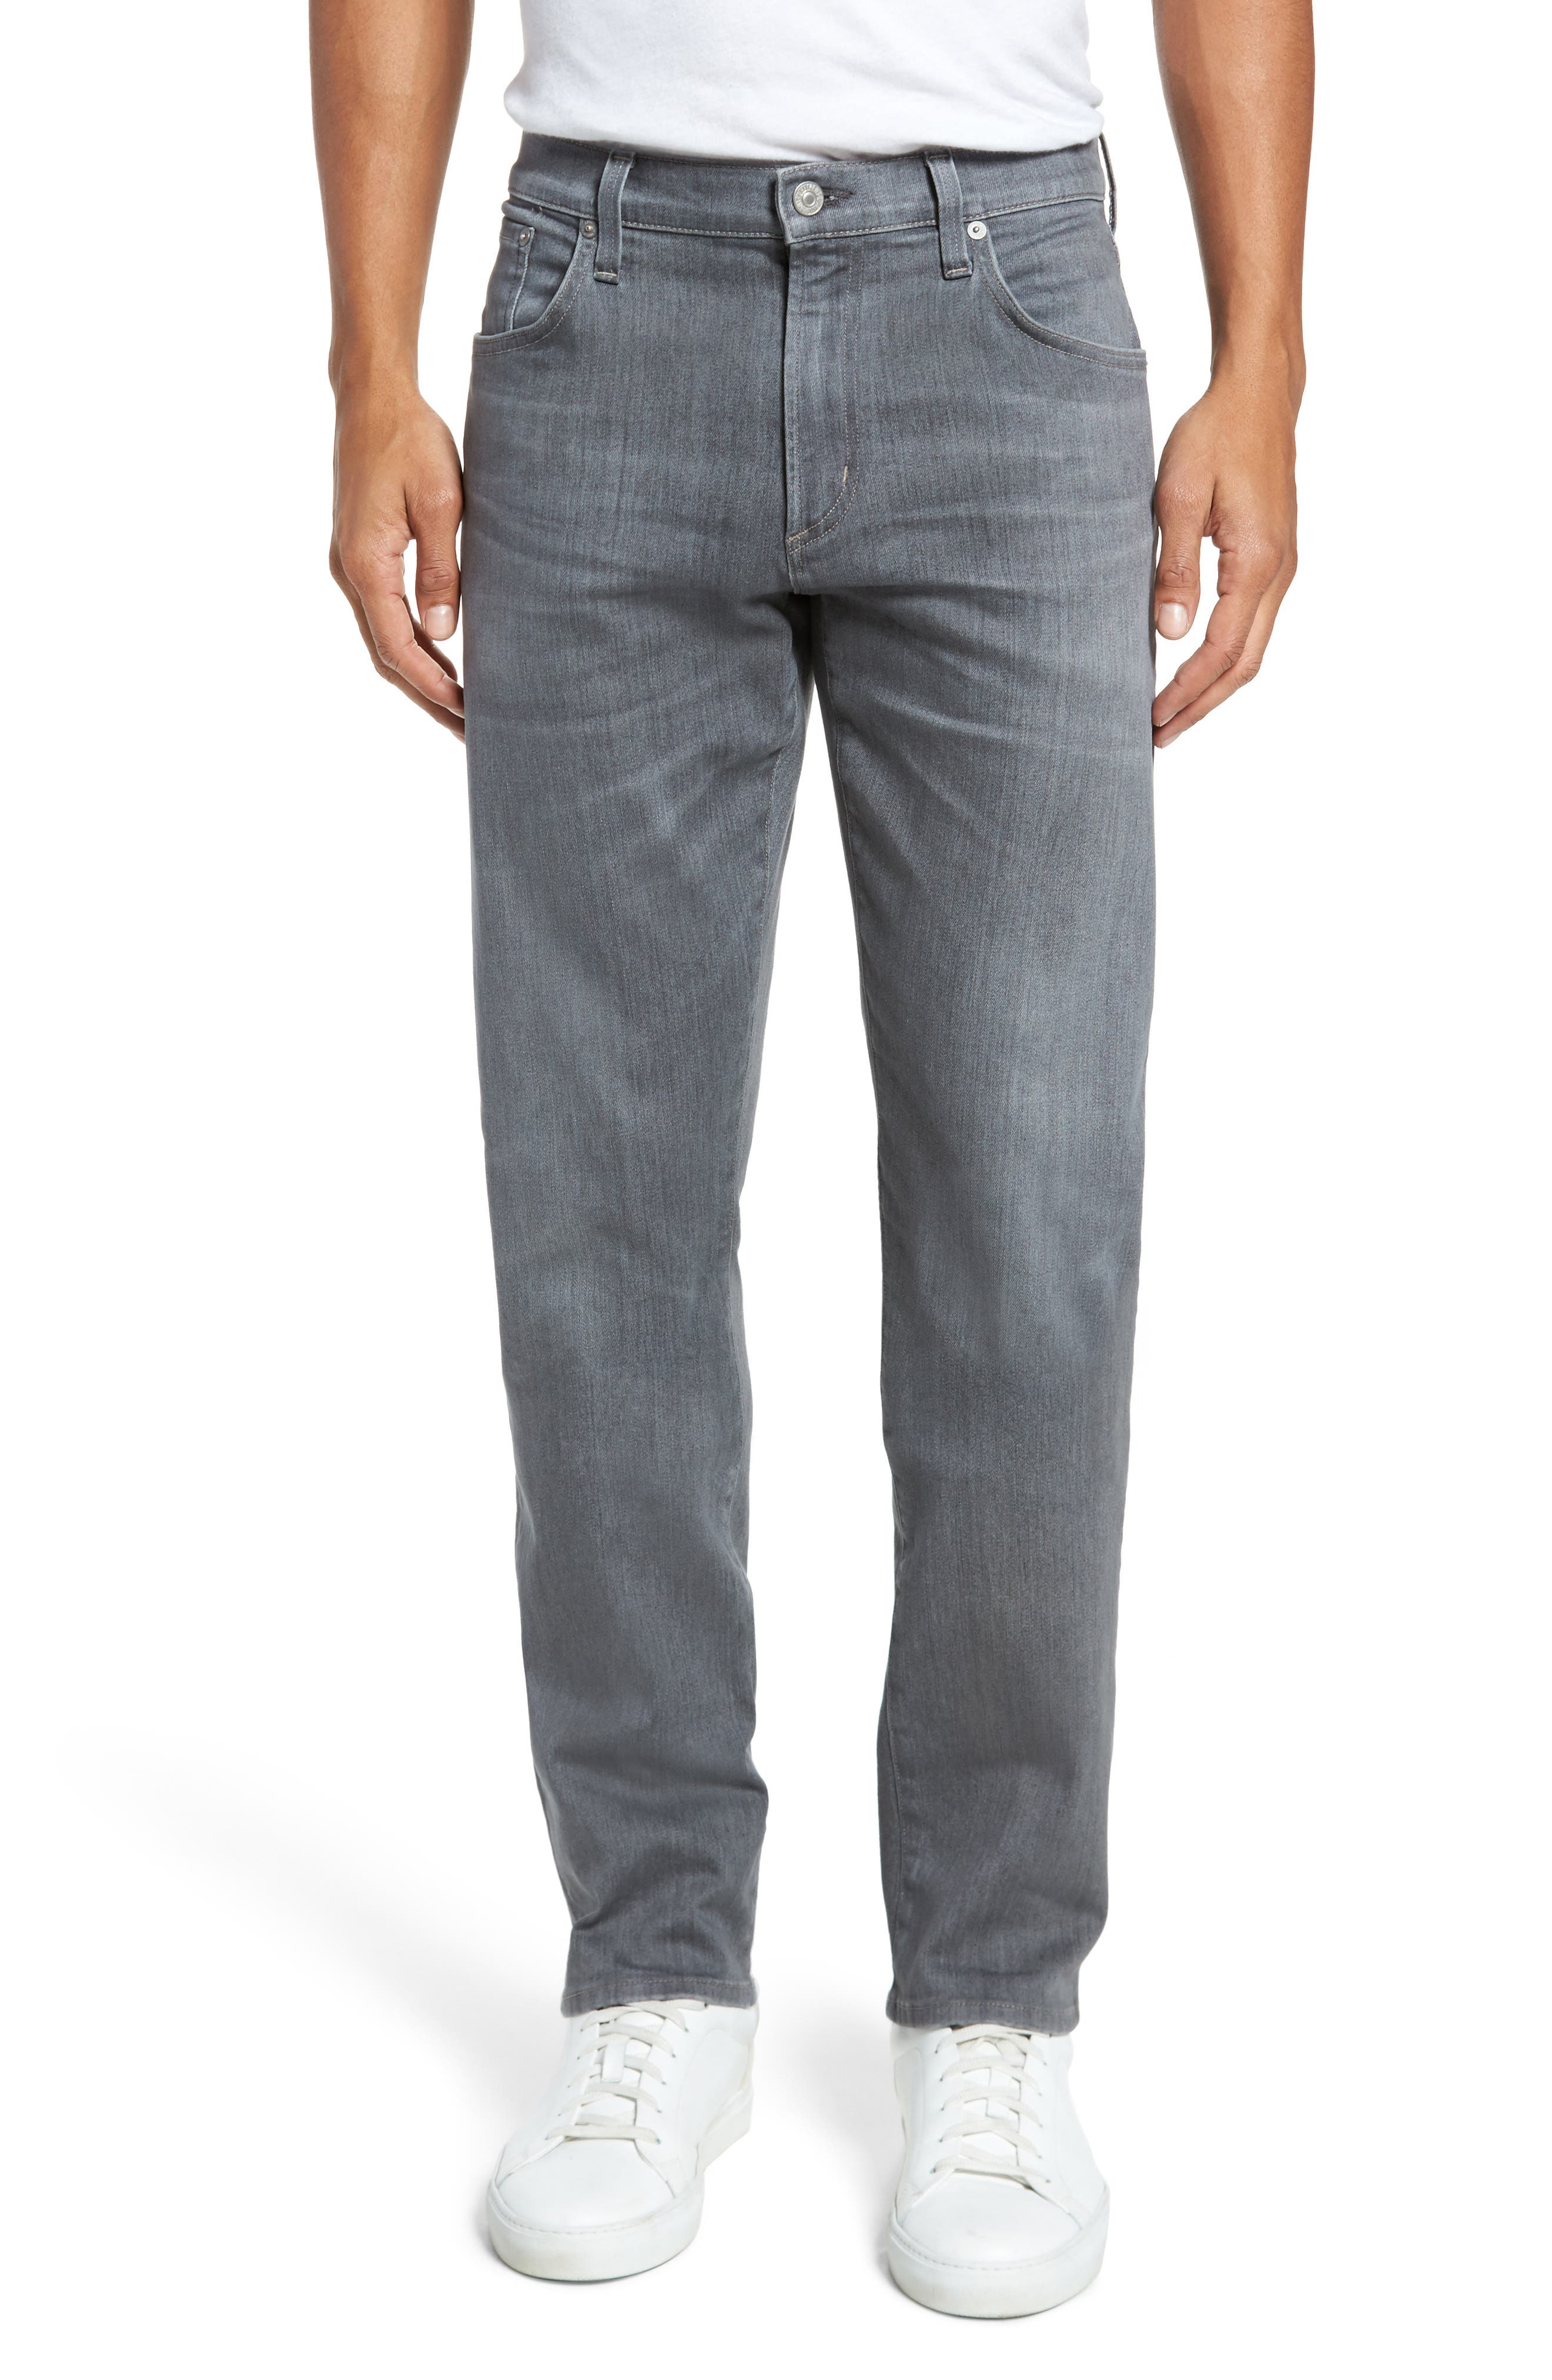 Alternate Image 1 Selected - Citizens of Humanity PERFORM - Gage Slim Straight Fit Jeans (Gull Grey)